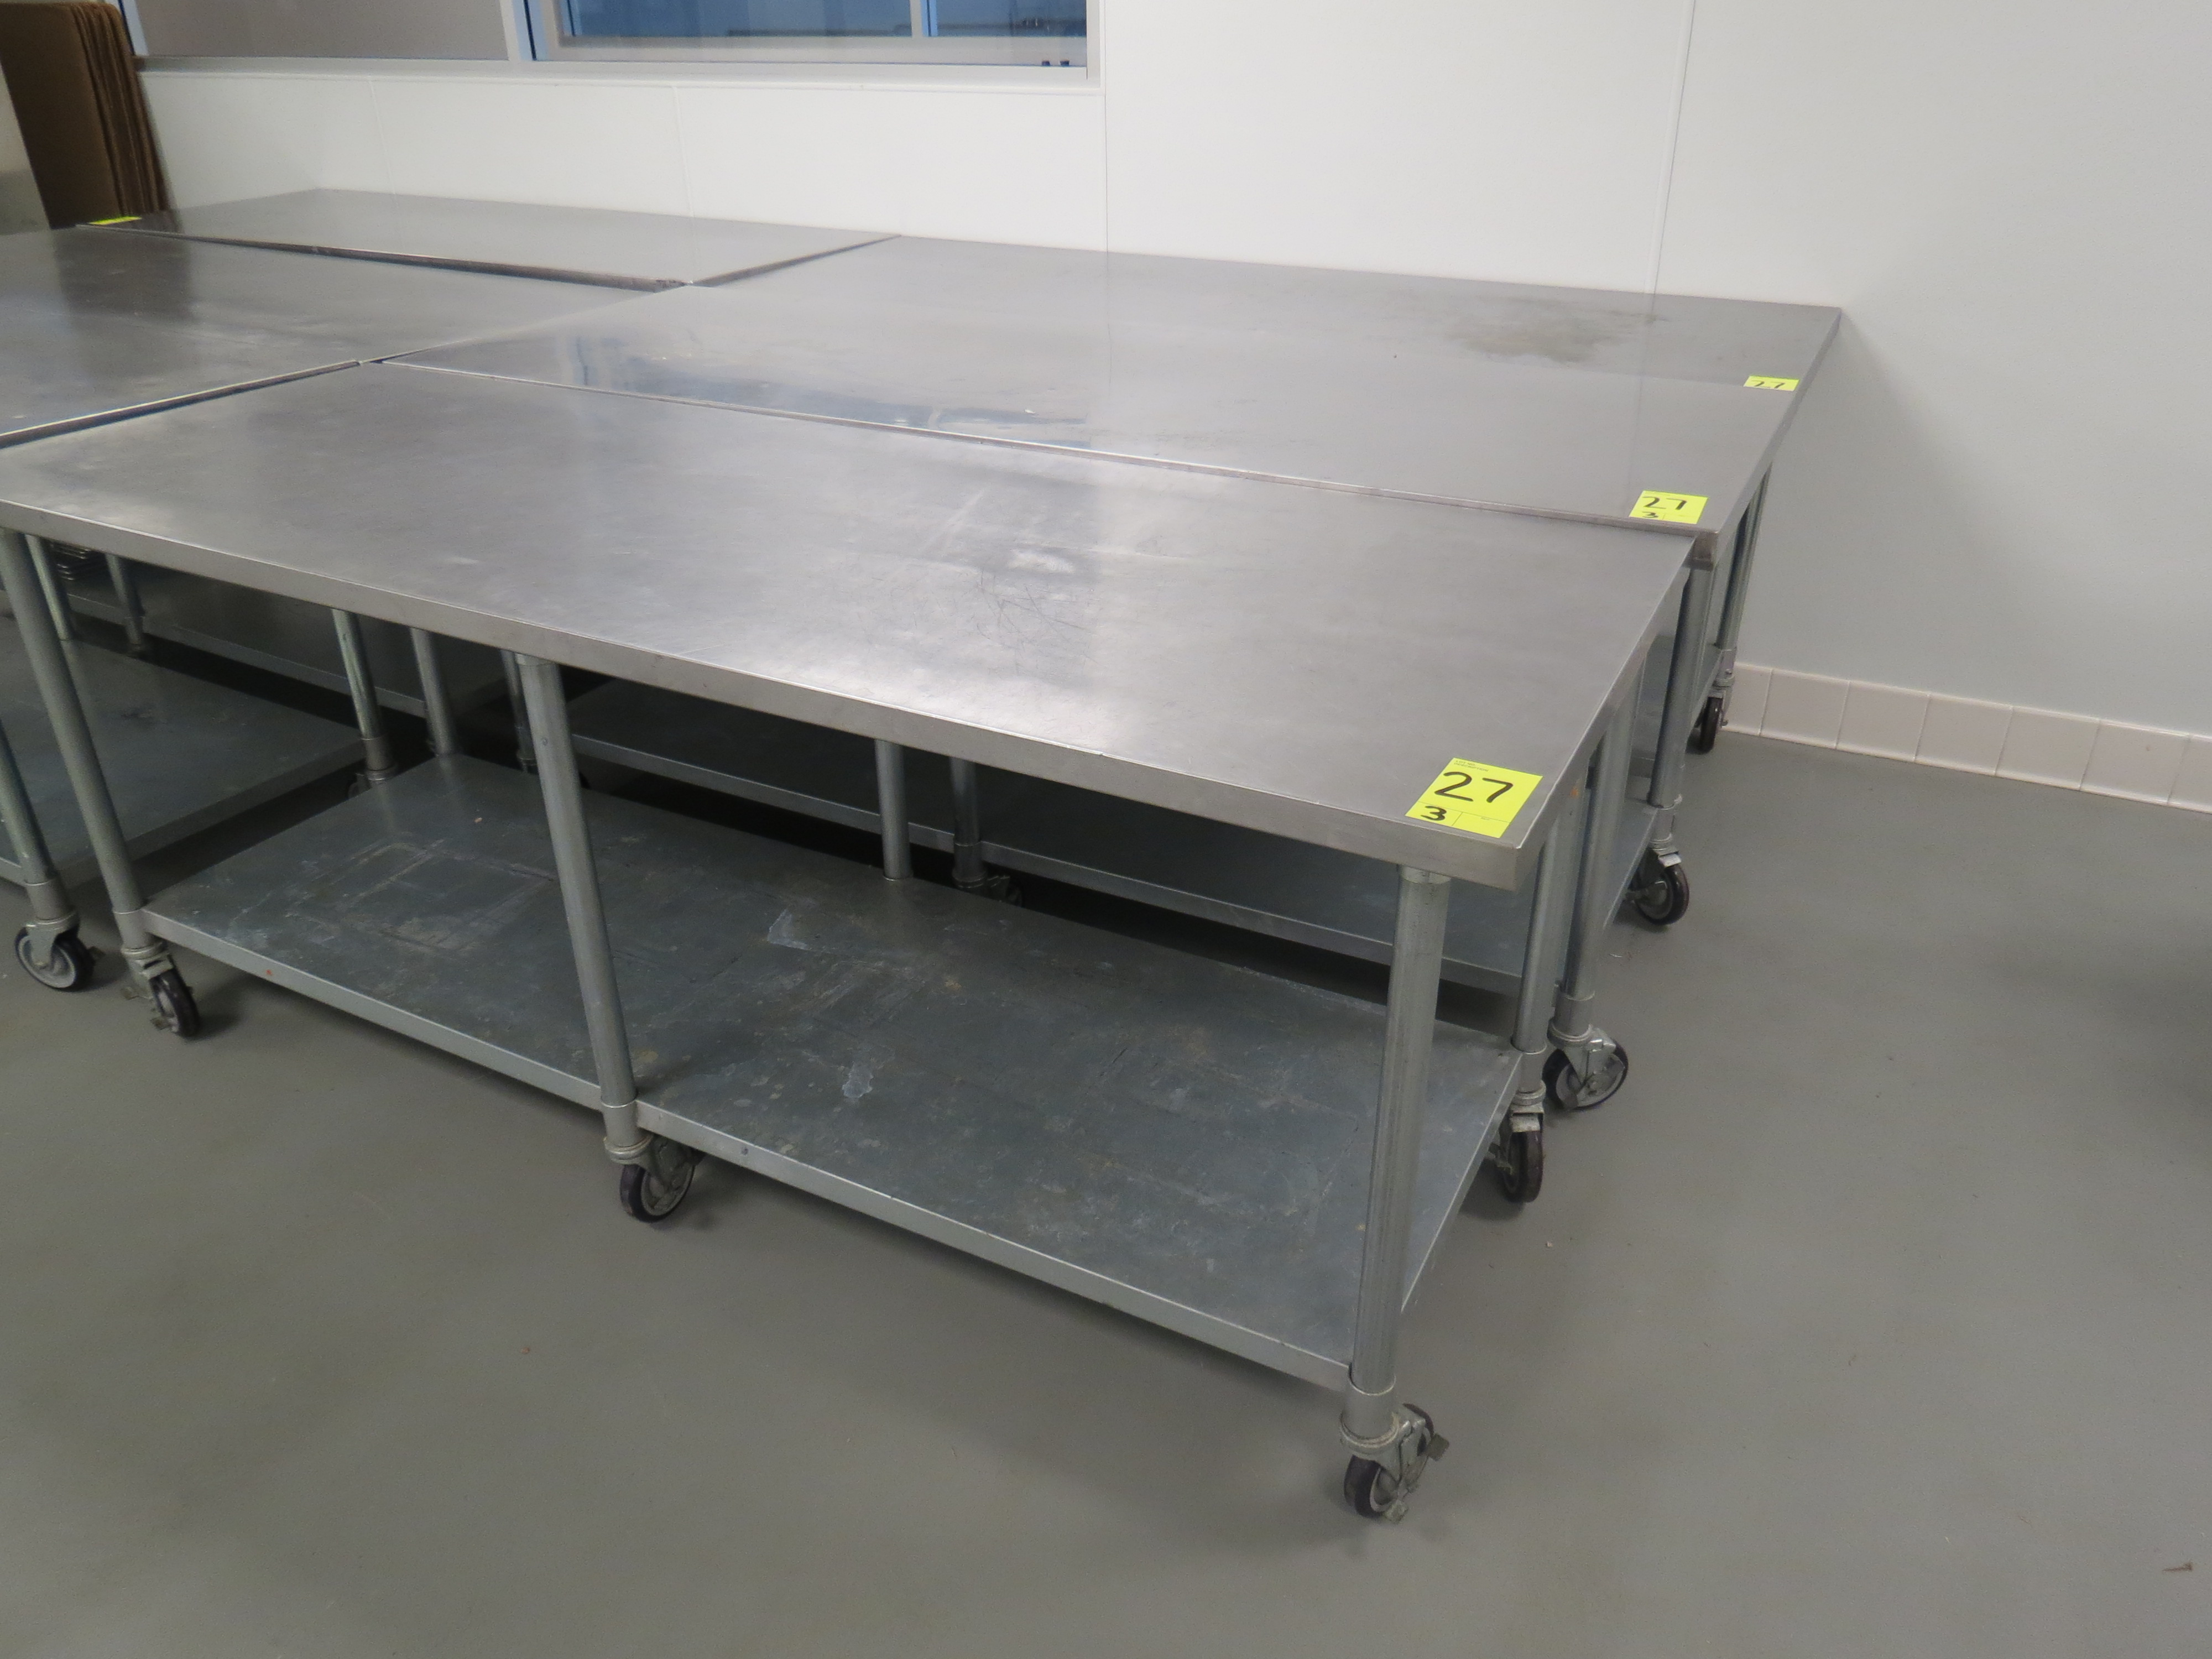 "Lot 27 - STAINLESS STEEL MOBILE PREP TABLES, 30"" x 84"""